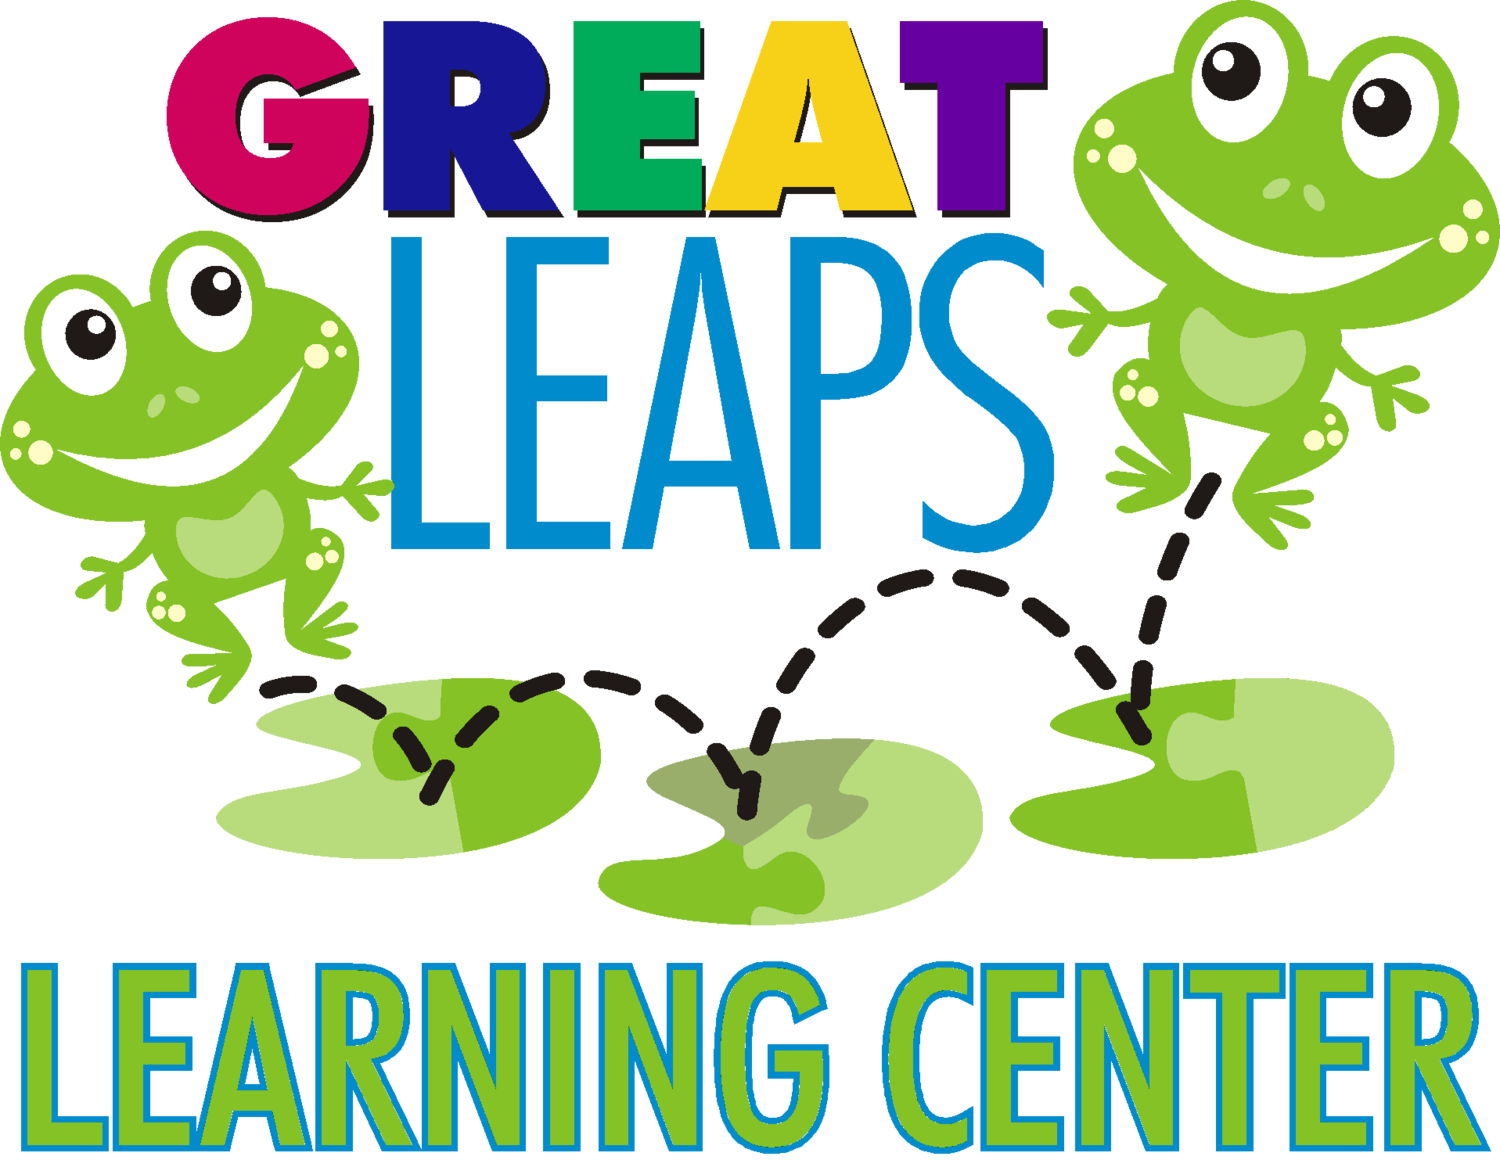 Great Leaps Learning Center